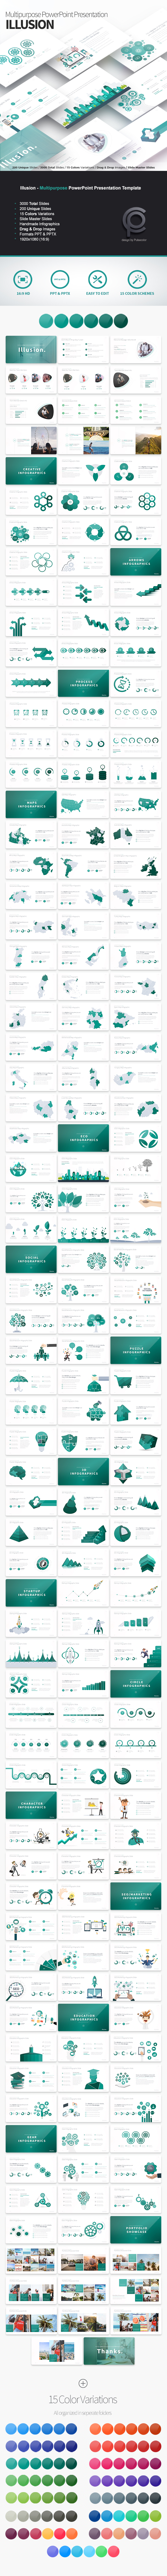 GraphicRiver Illusion Multipurpose PowerPoint Presentation 21159496